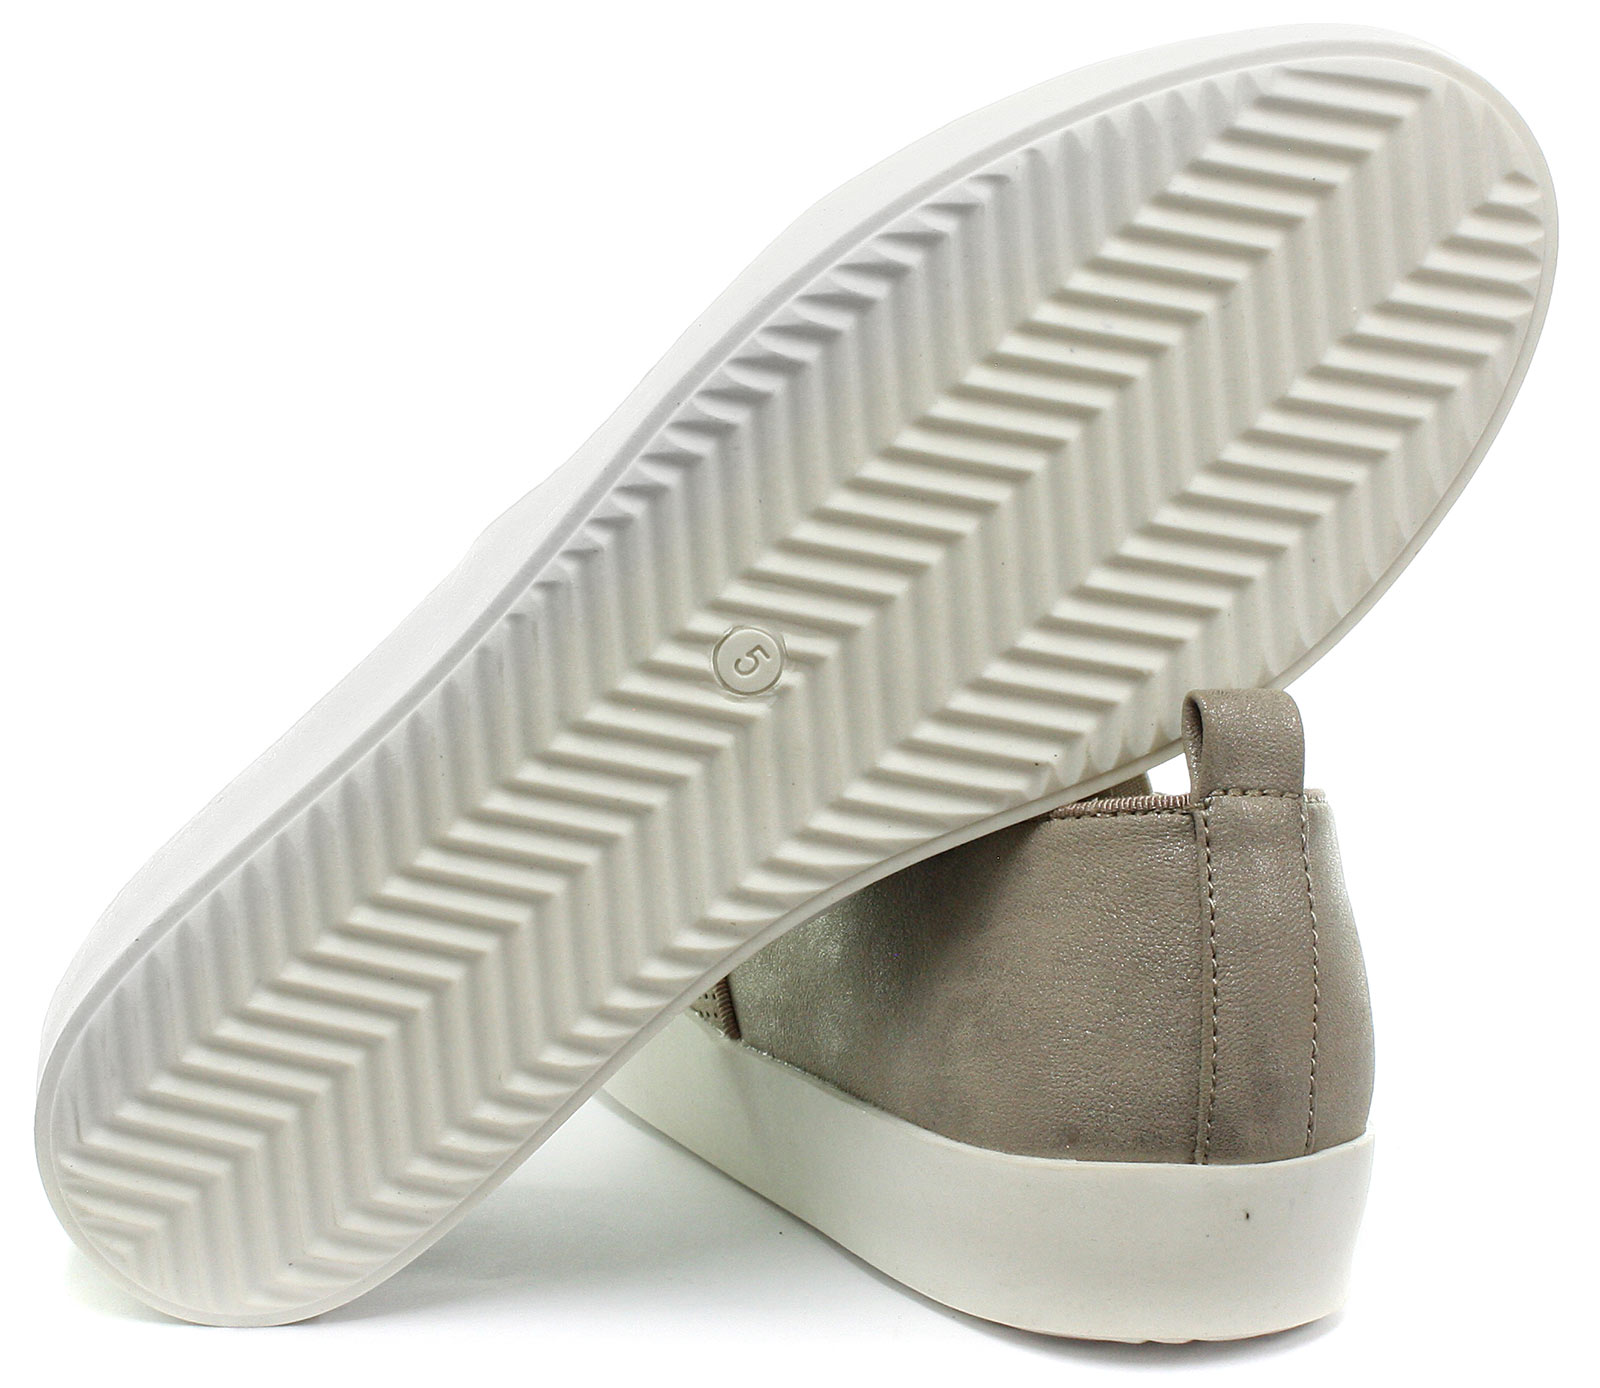 New-Cipriata-Donatella-Womens-Twin-Gusset-Casual-Shoes-ALL-SIZES-AND-COLOURS miniature 12